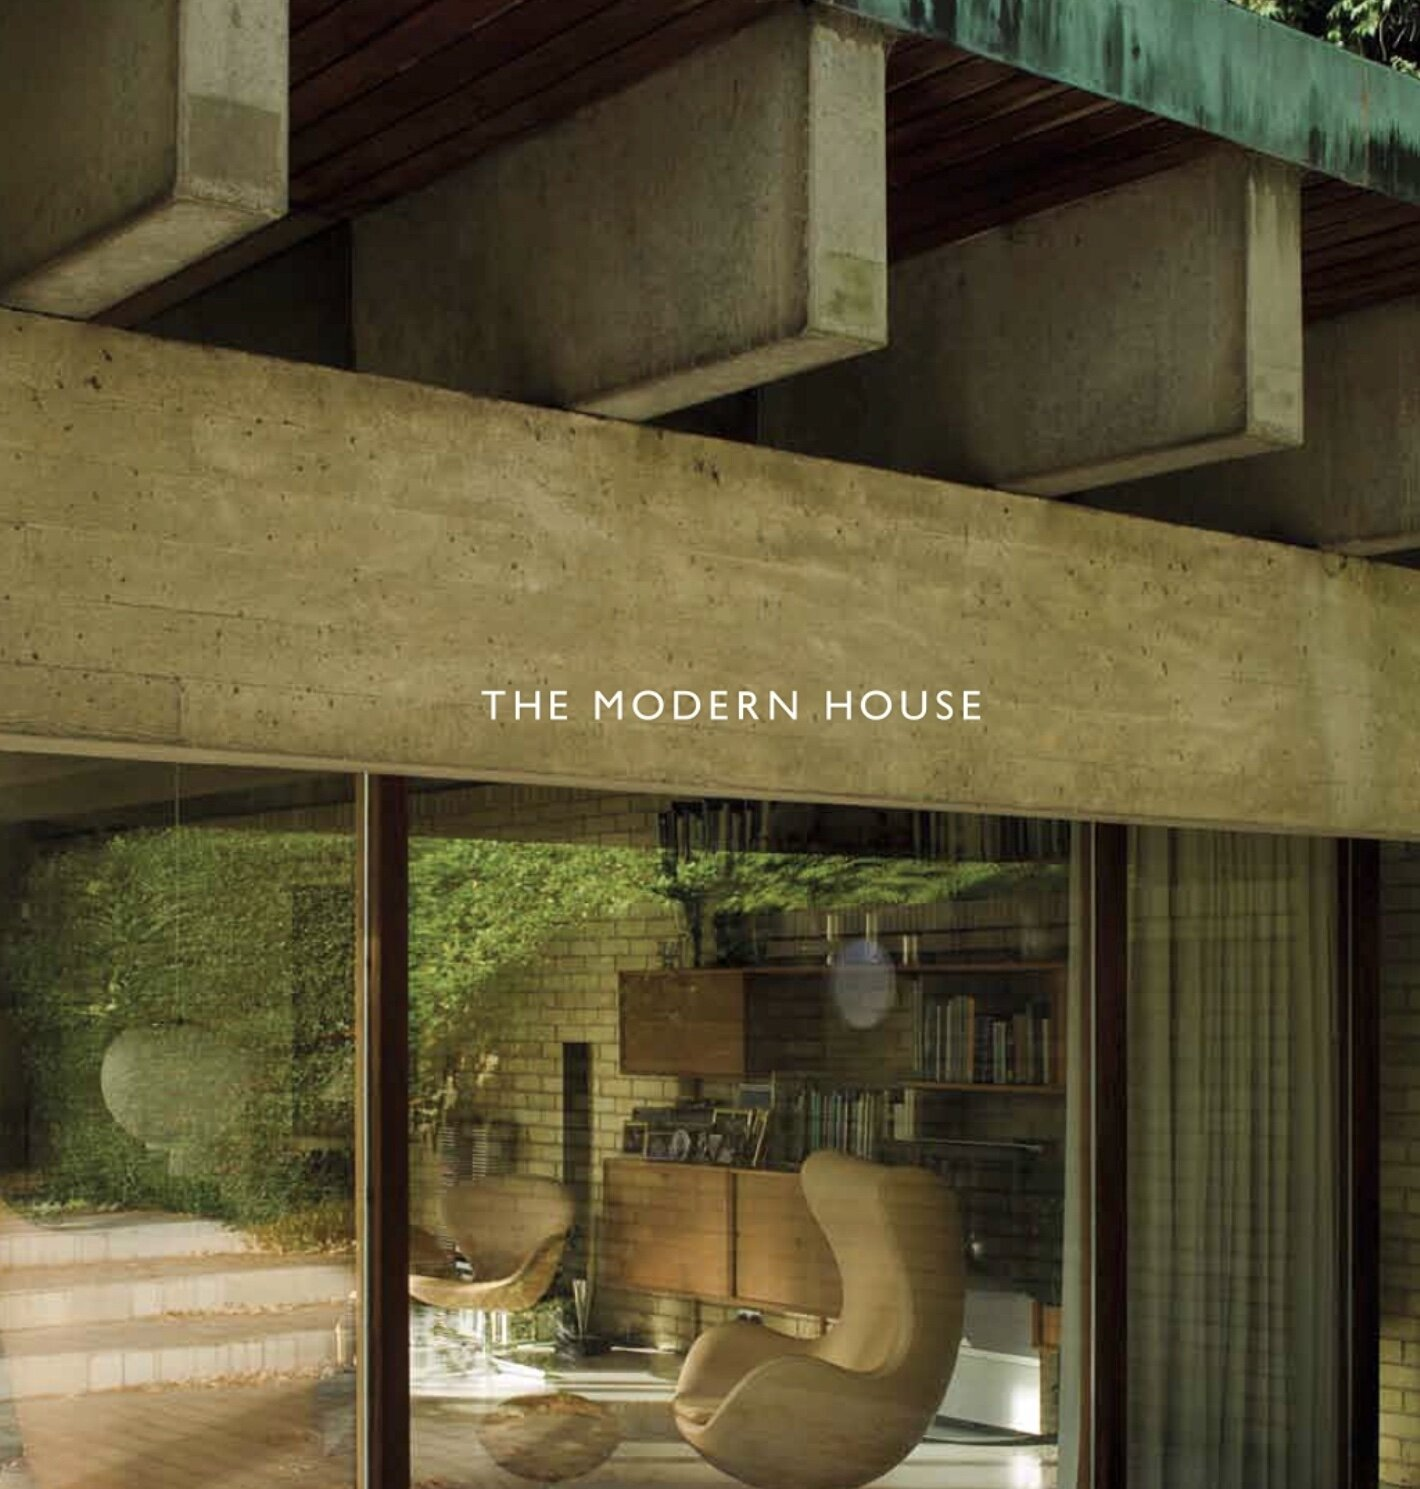 "The Modern House - The Modern House is an estate agency that helps people live in more thoughtful and beautiful ways. They believe in design as a powerful force for good – from personal factors such as wealth and wellbeing to more macro themes including community, place-making and architectural preservation. Esquire credits The Modern House with rewriting ""the rulebook on estate agency"", and GQ has voted us ""one of the best things in the world""."